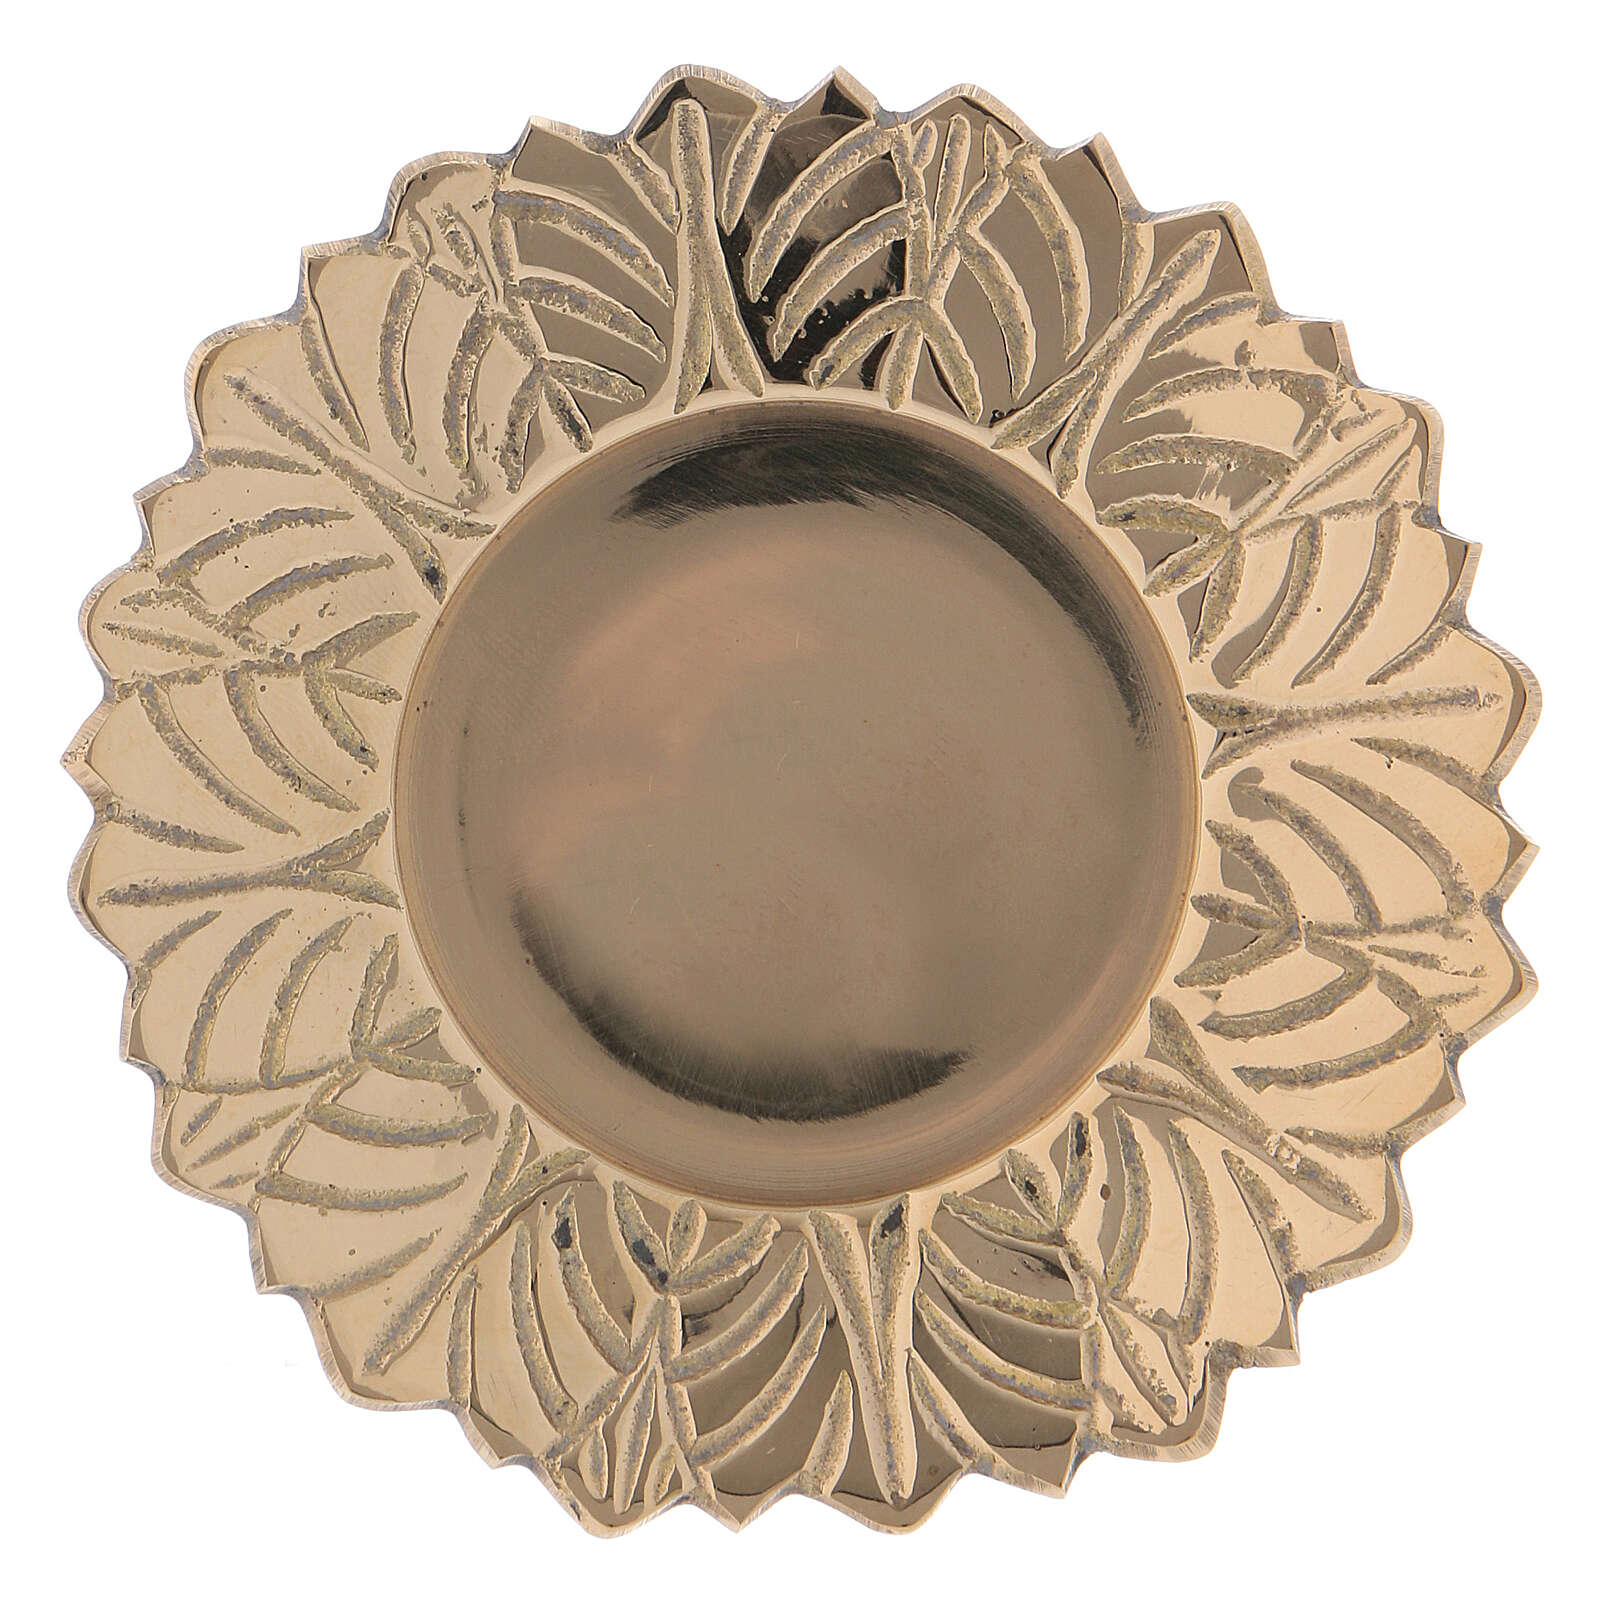 Gold plated brass candle holder plate with leaves decoration on the edge 1 1/2 in 3